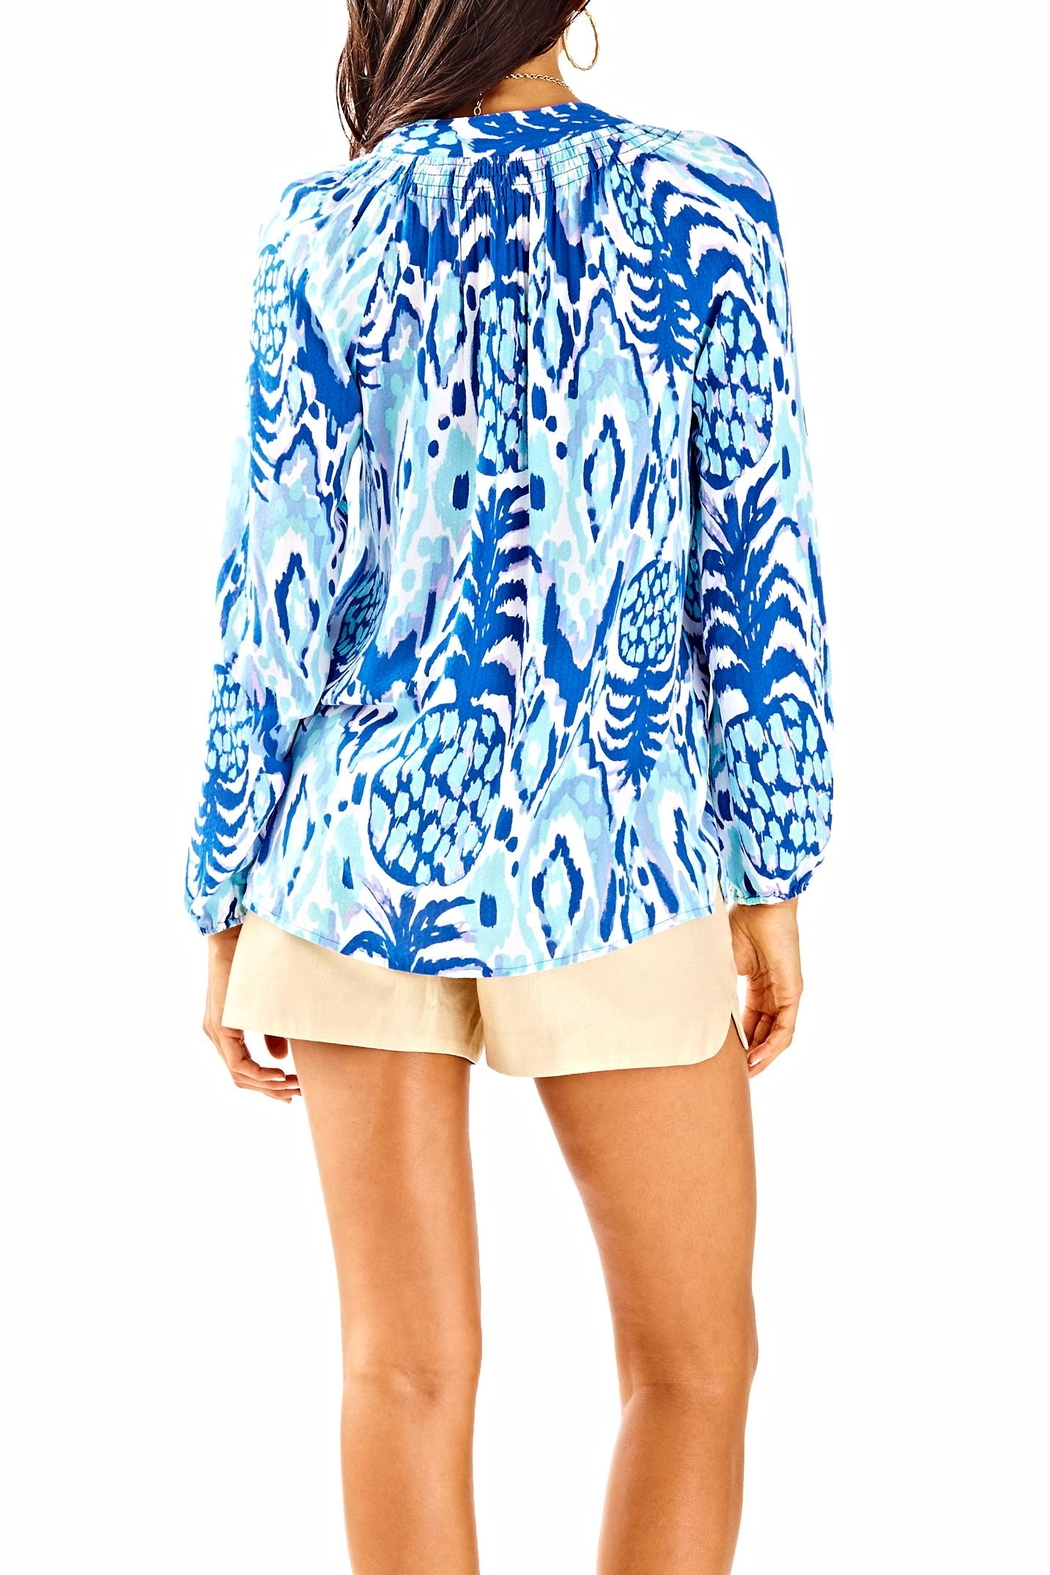 Lilly Pulitzer Button Front Elsa Top - Front Full Image